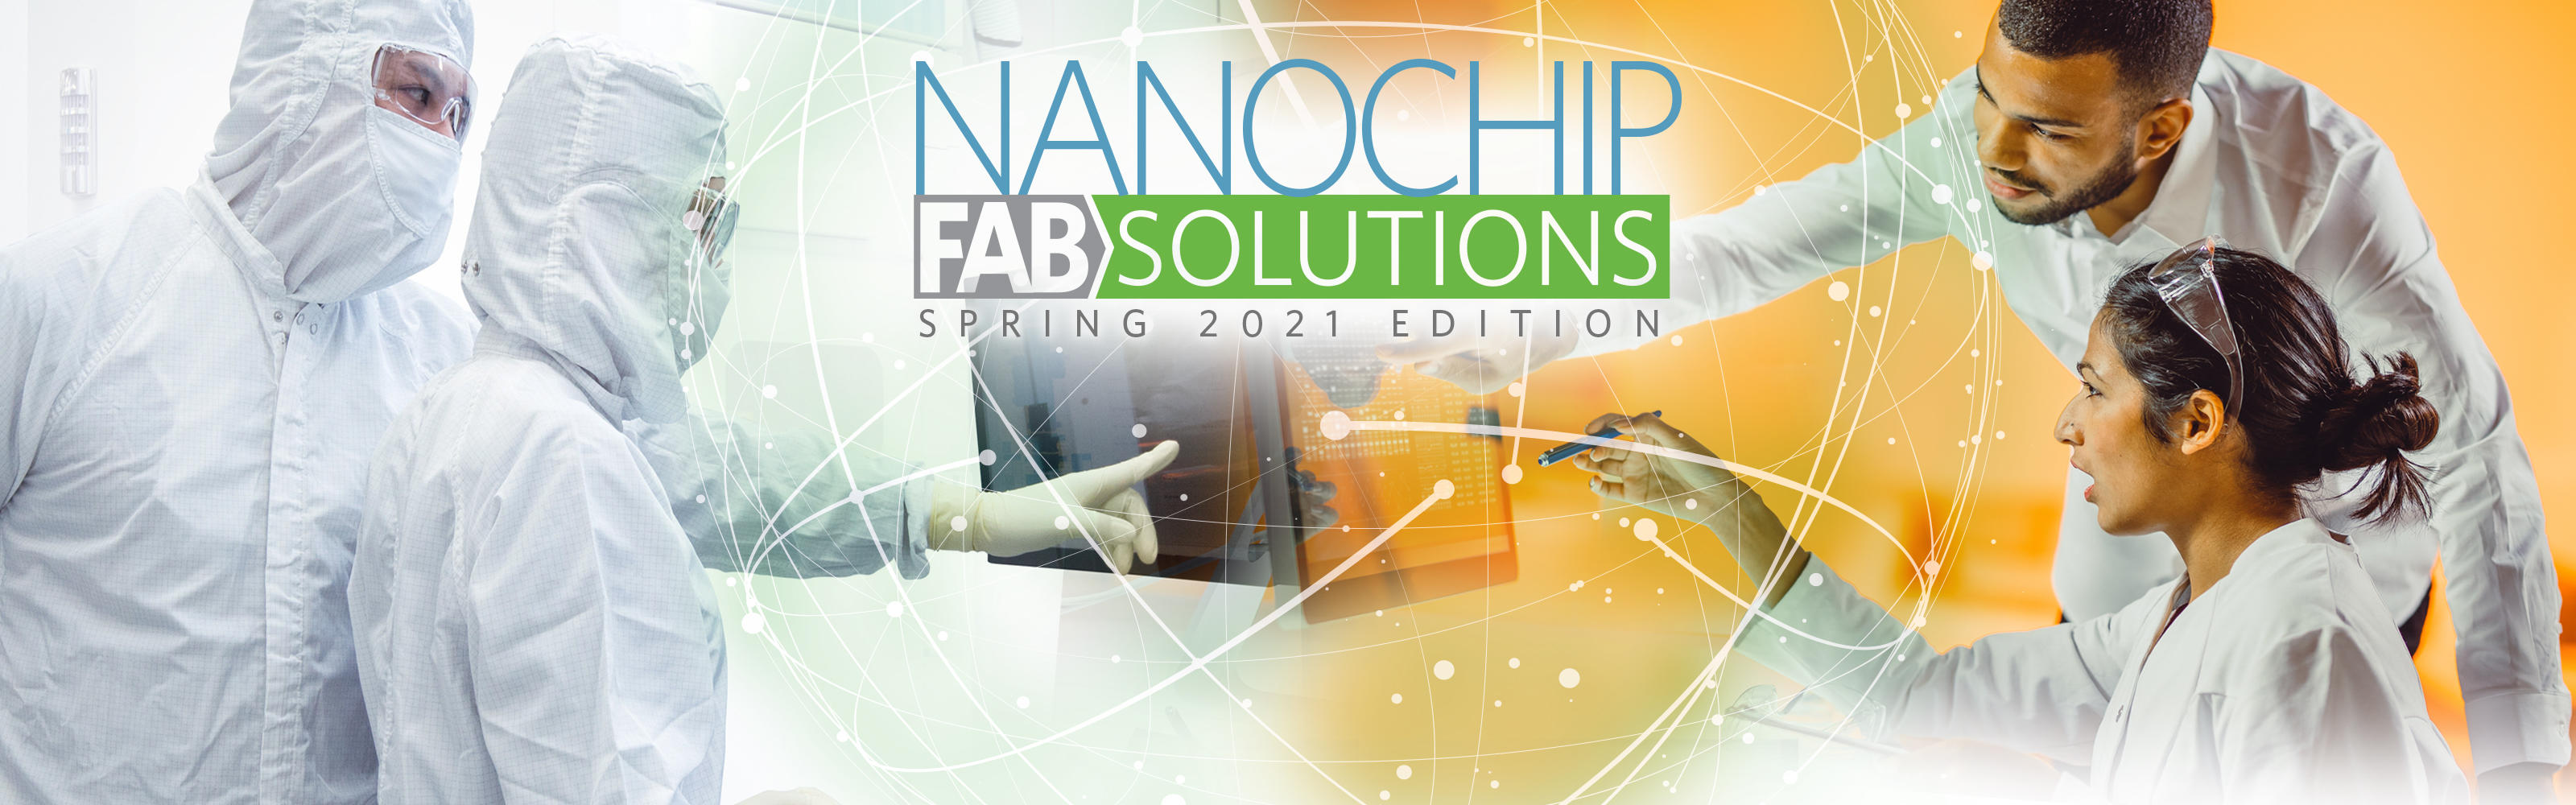 Read Nanochip Spring 2021 Edition